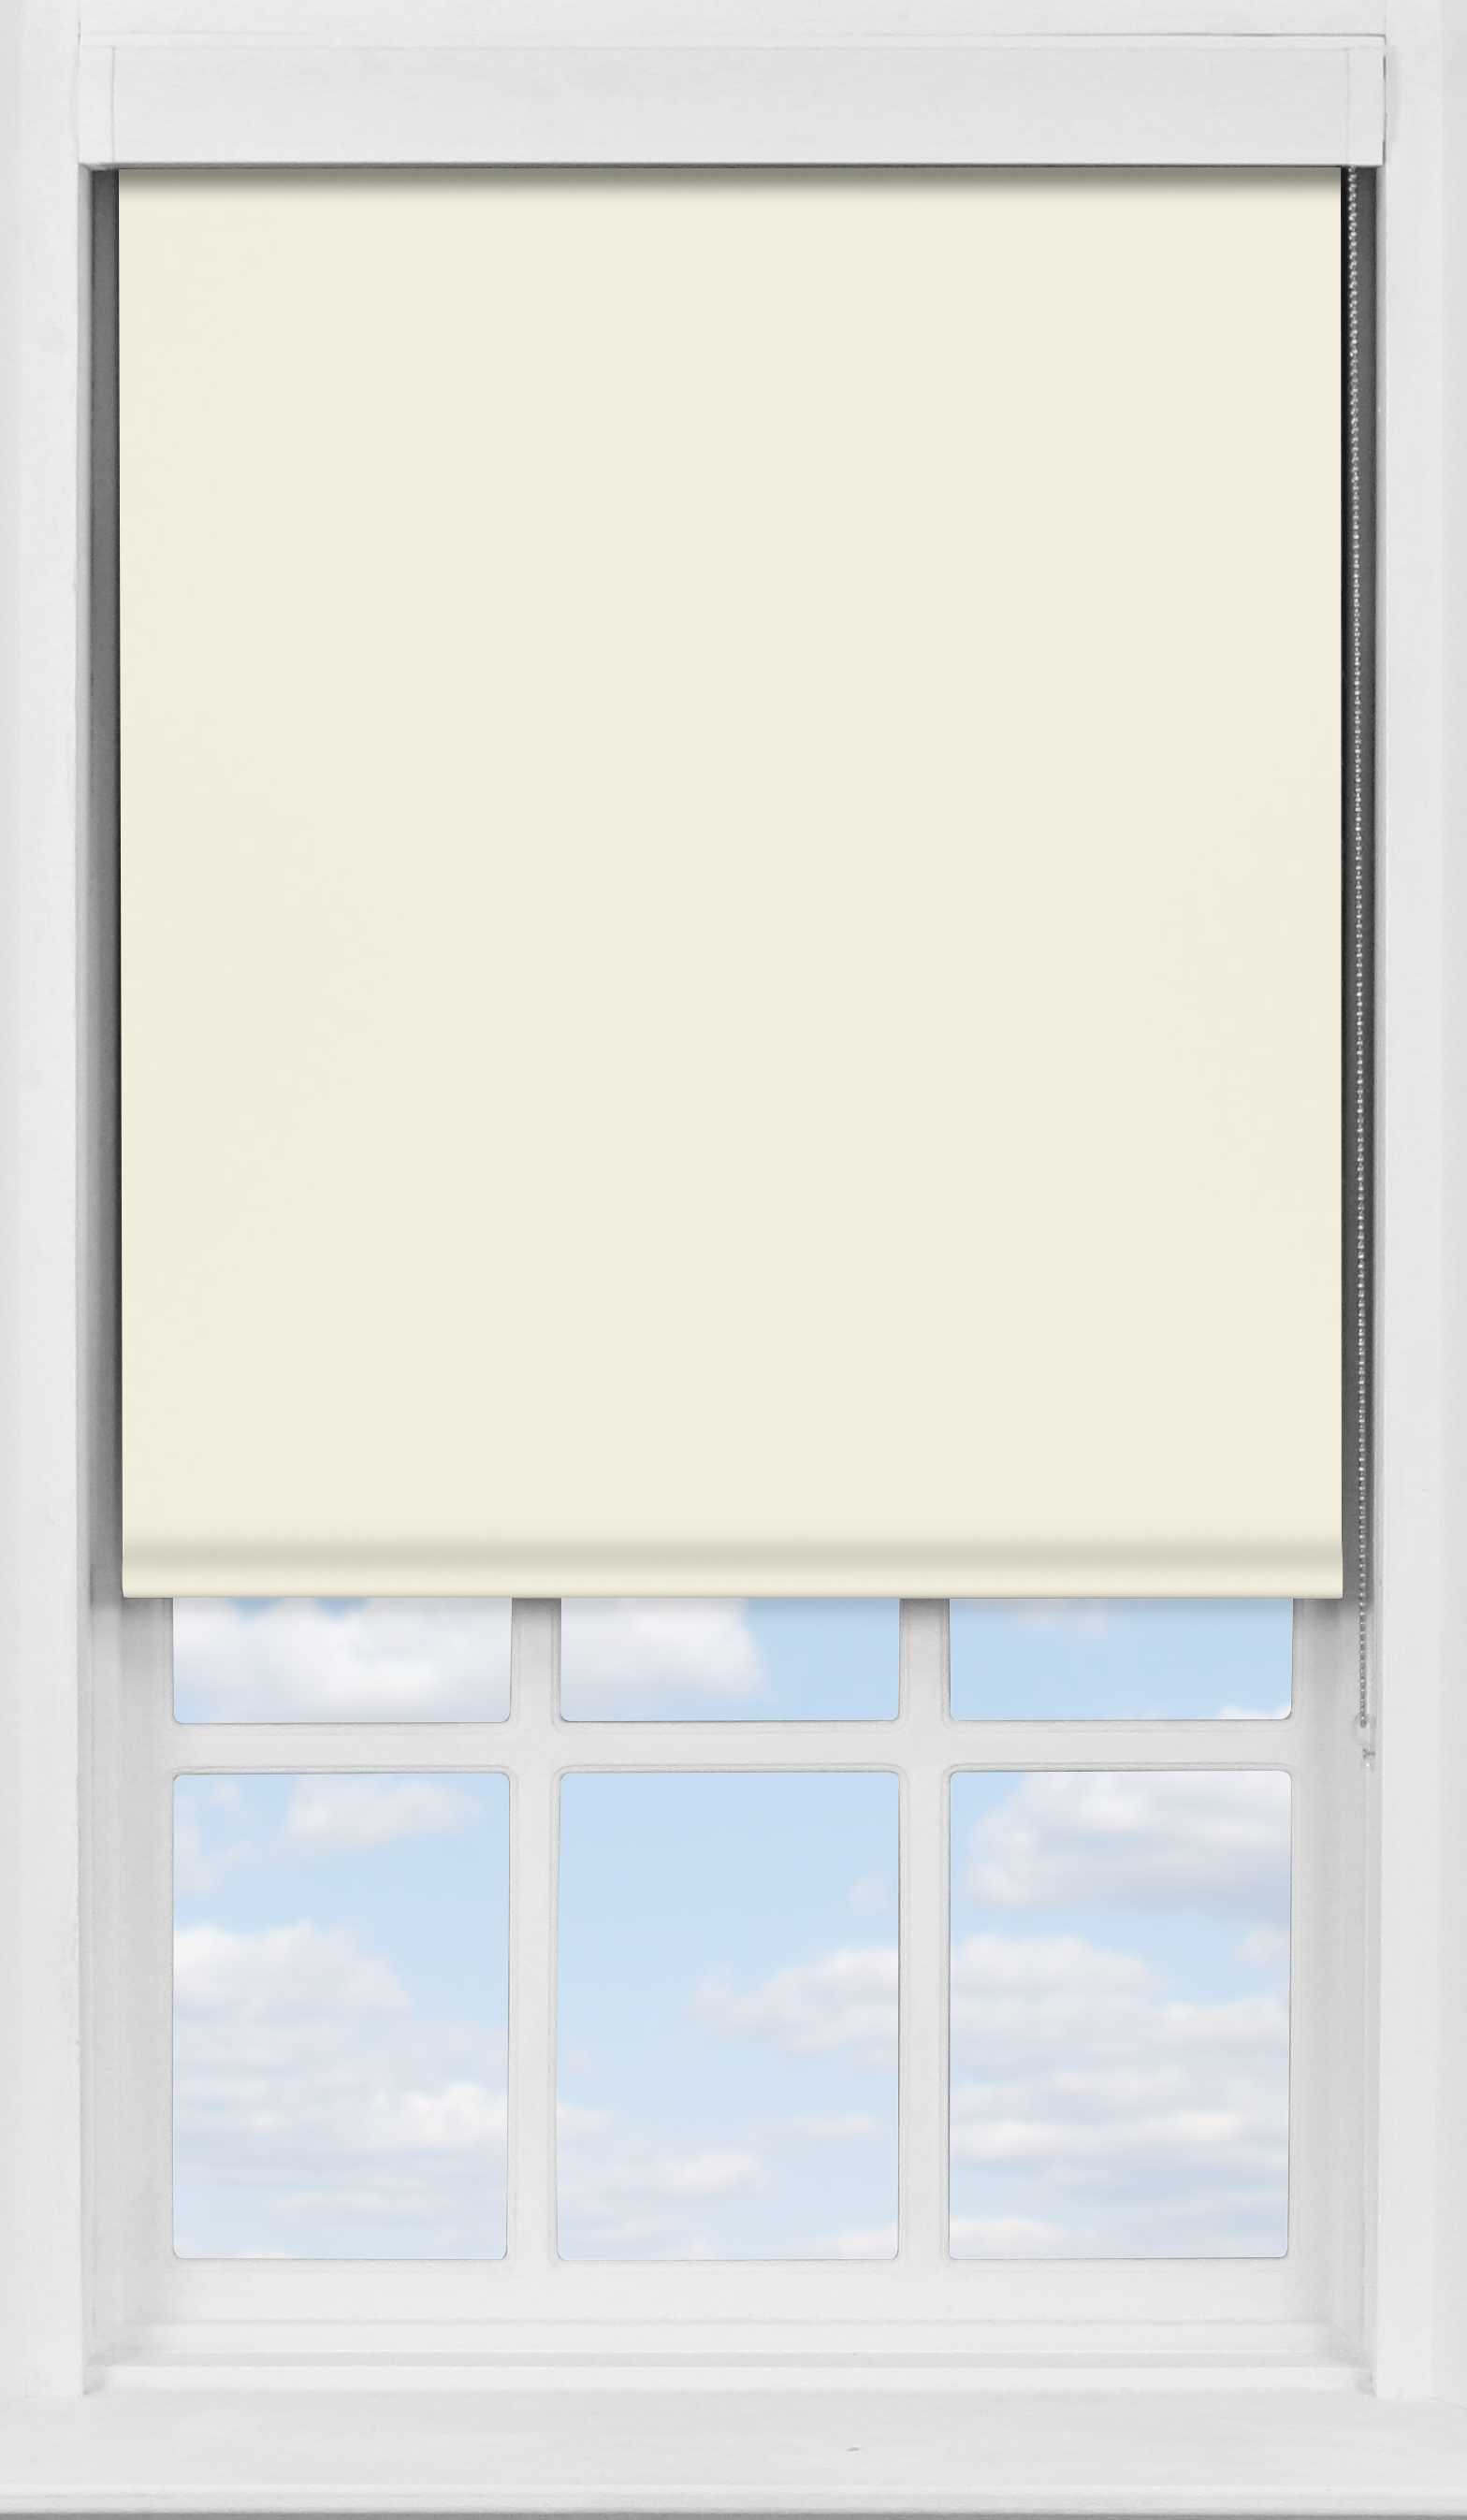 Premium Roller Blind in Latte Translucent